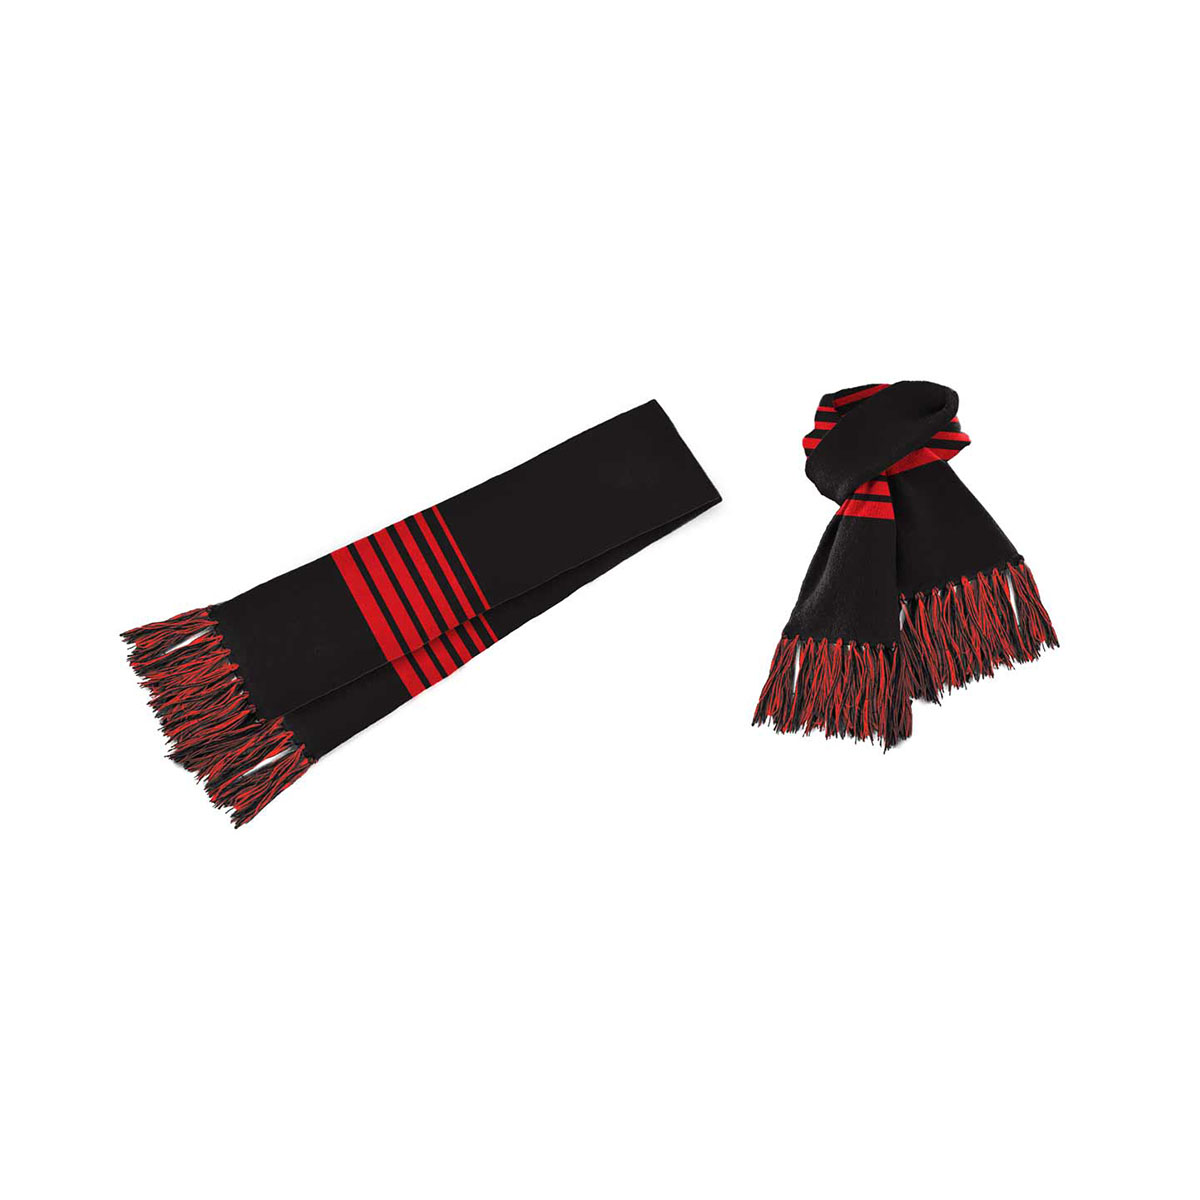 Acrylic Scarf-Black / Red